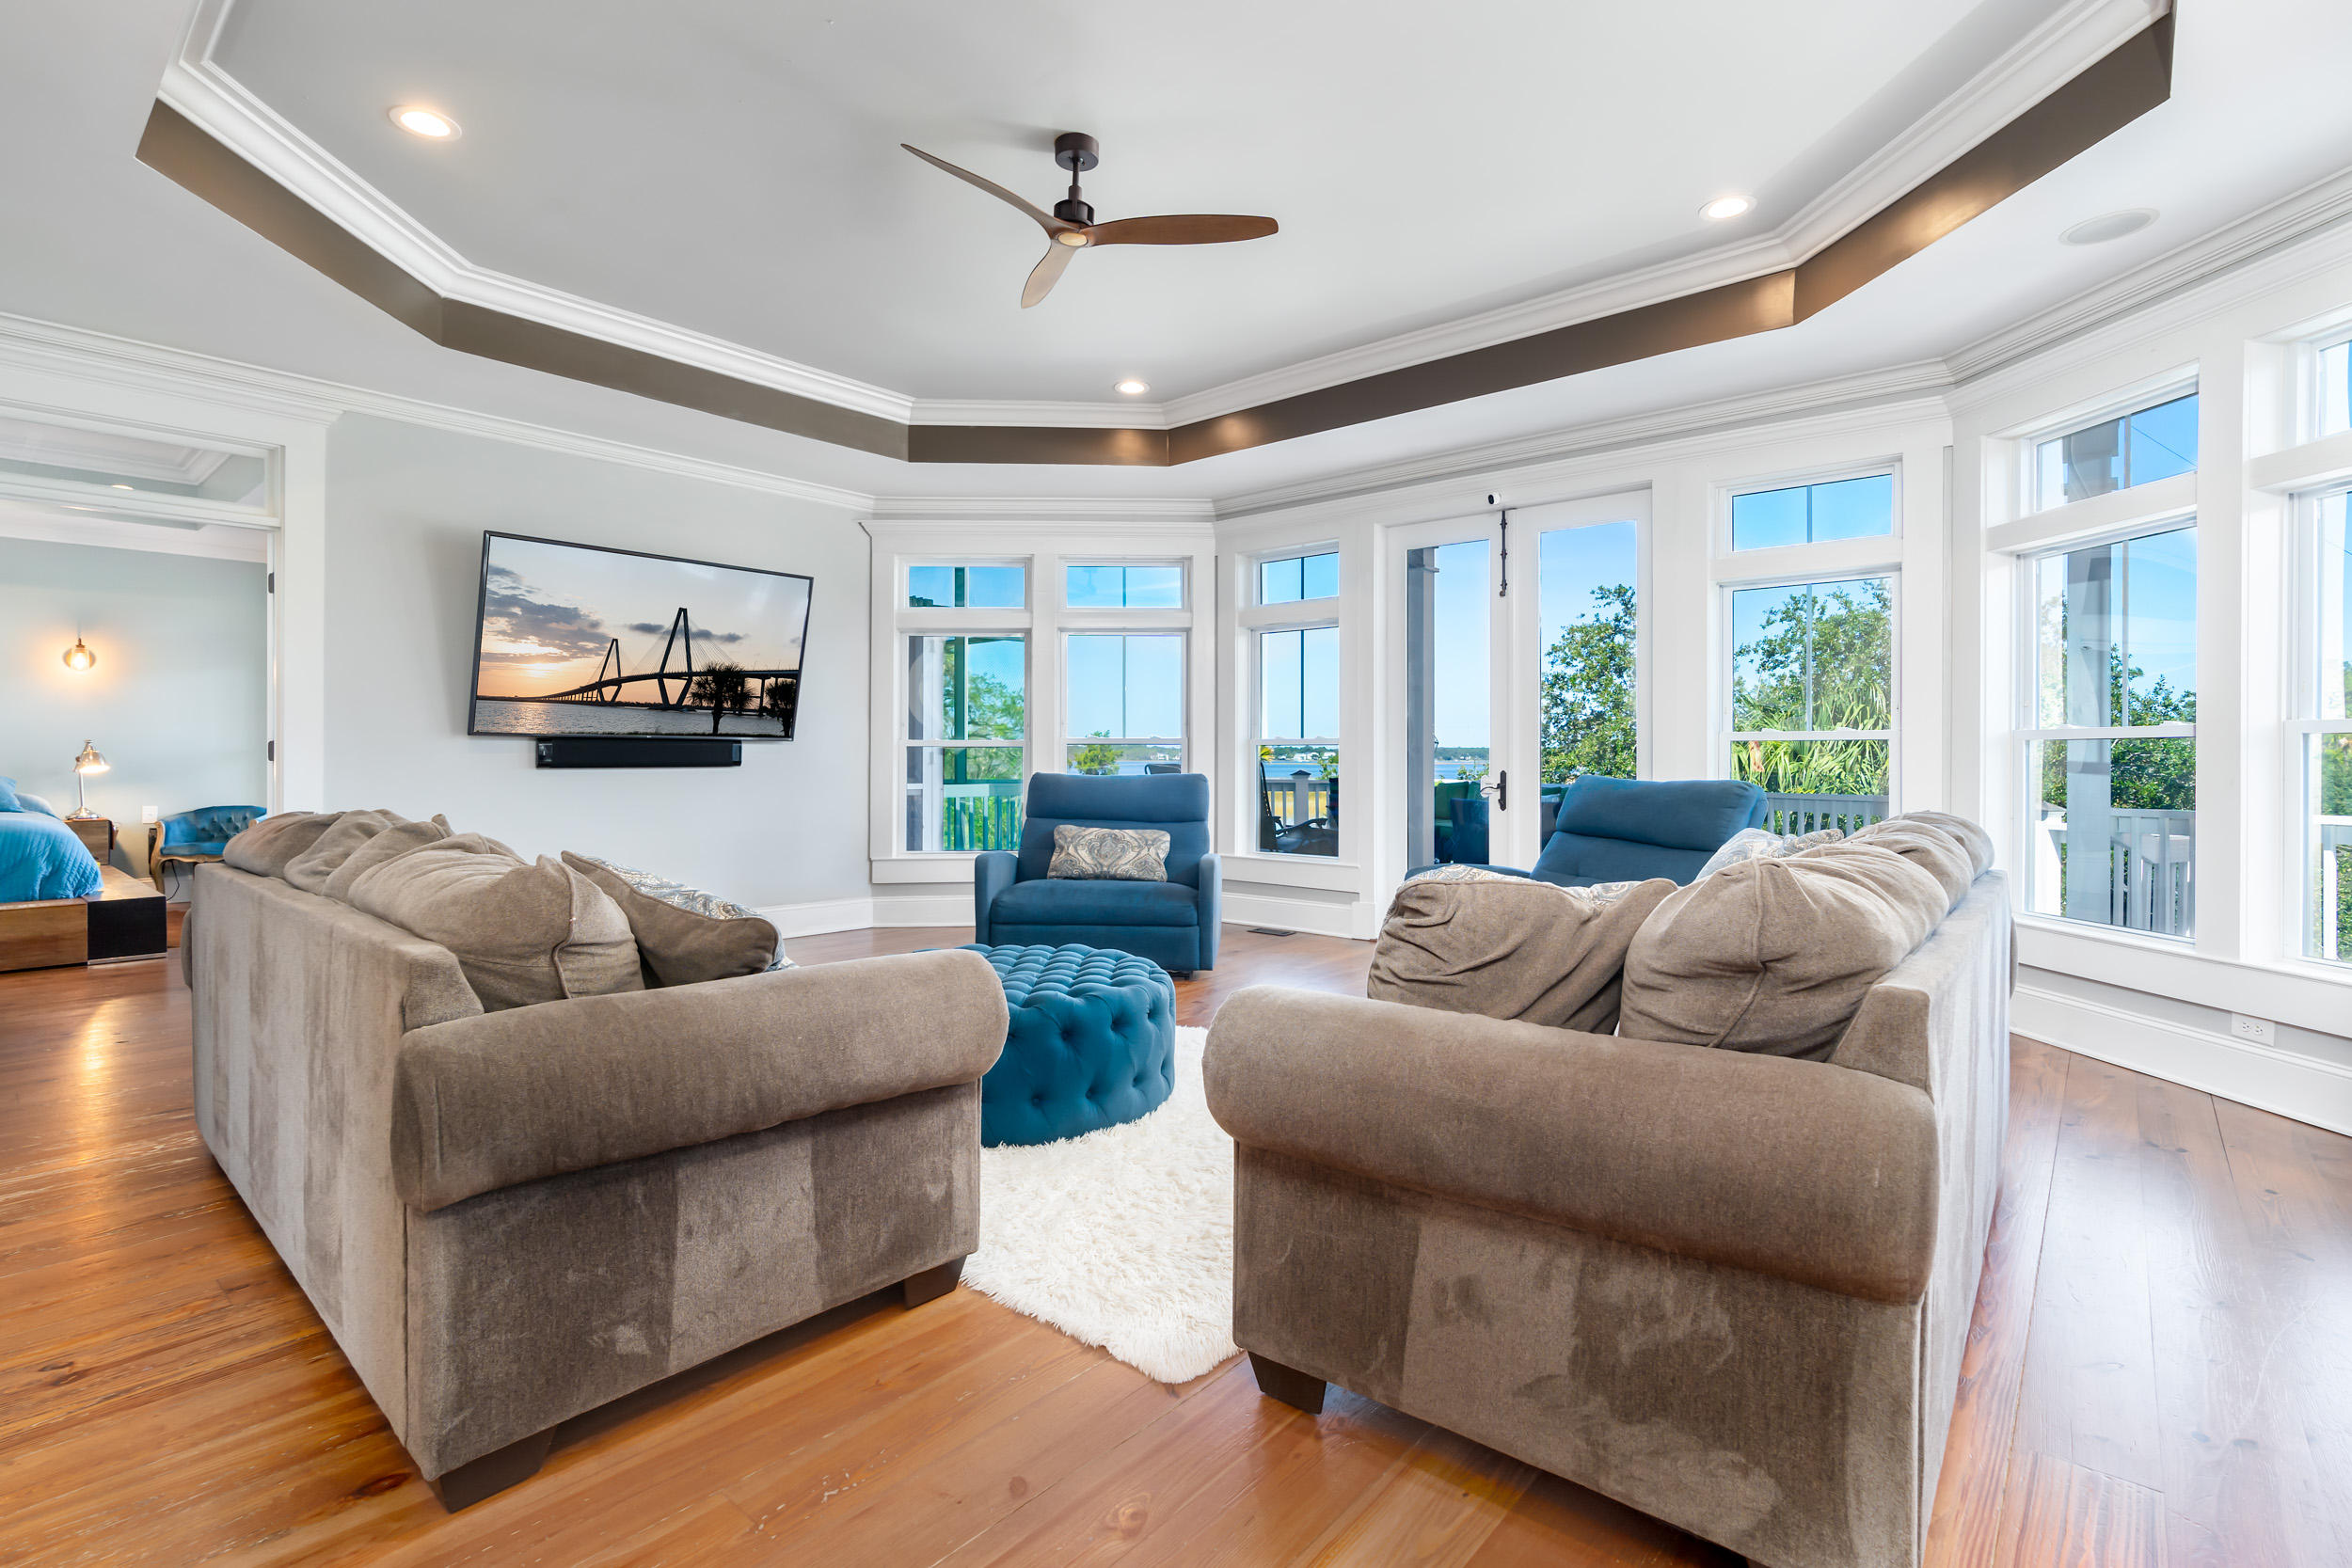 Rivertowne On The Wando Homes For Sale - 2268 Hartfords Bluff, Mount Pleasant, SC - 54